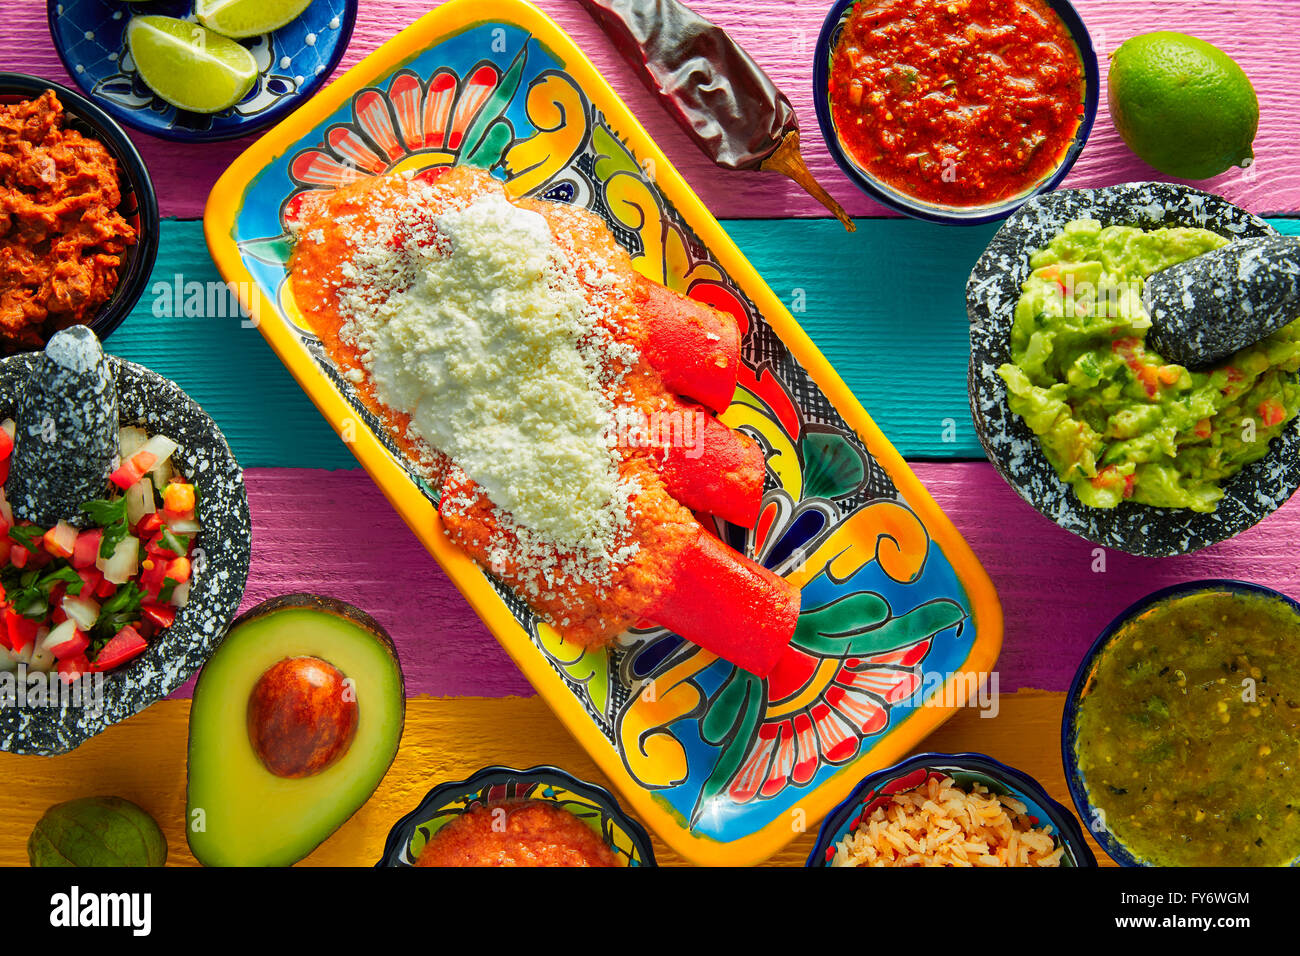 Red enchiladas Mexican food with guacamole and sauces on colorful table Stock Photo